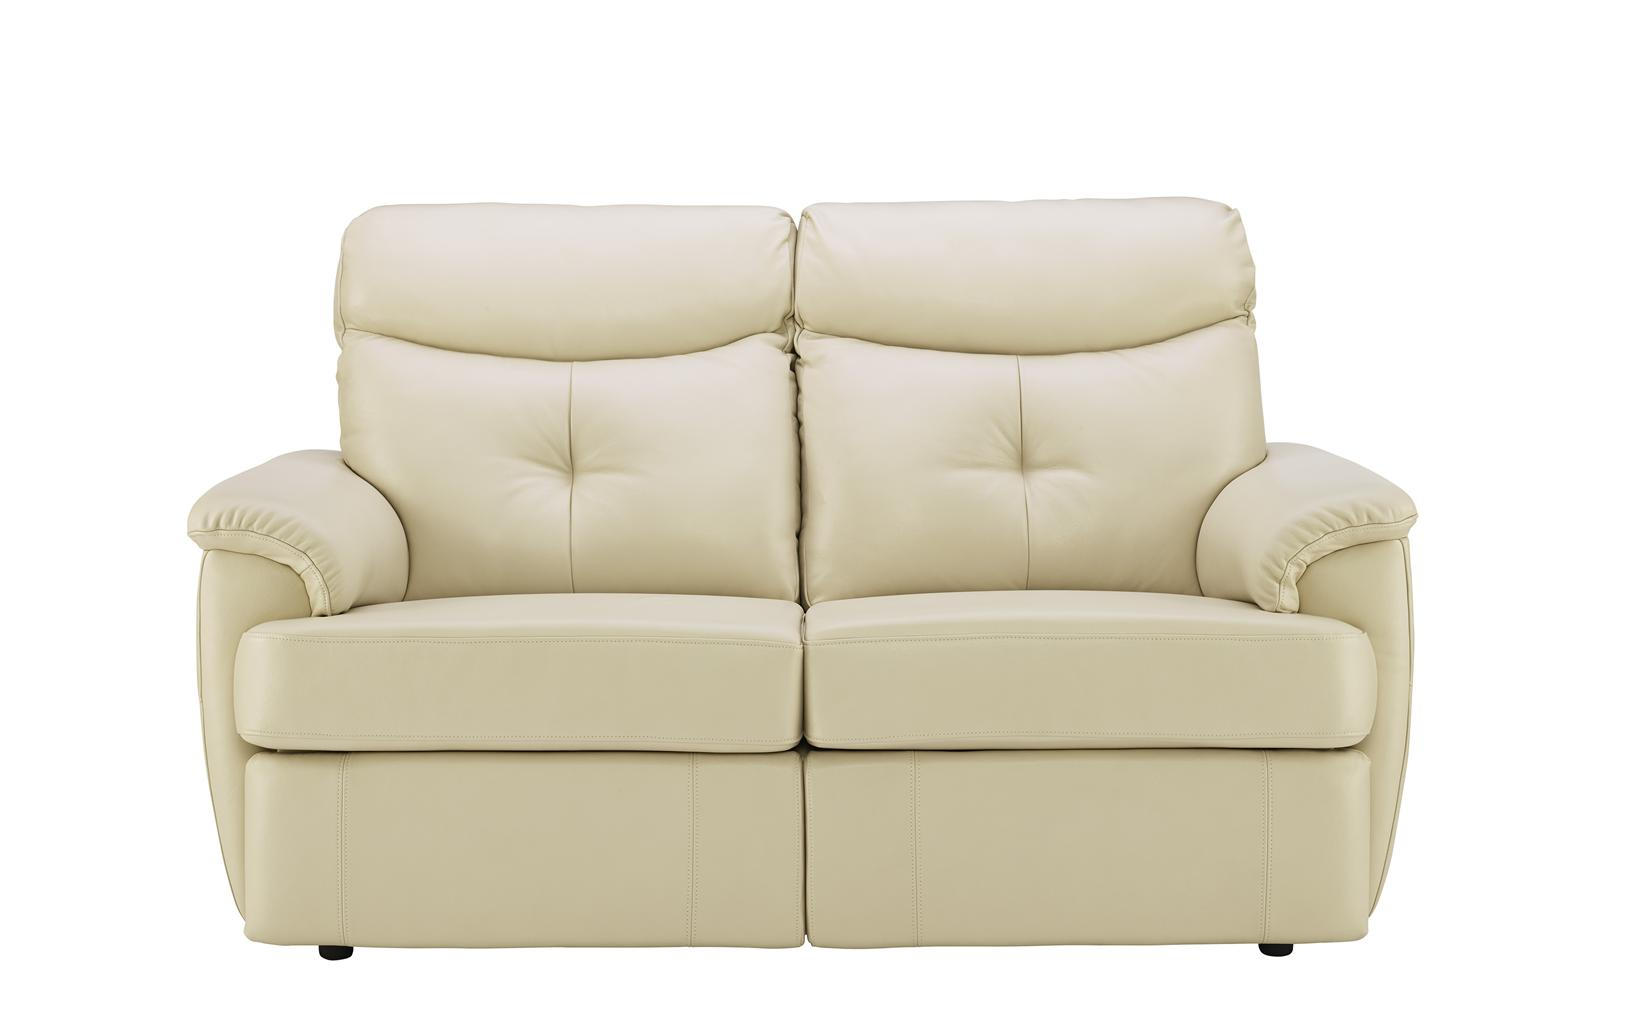 G Plan - Atlanta Leather Two Seater Sofa